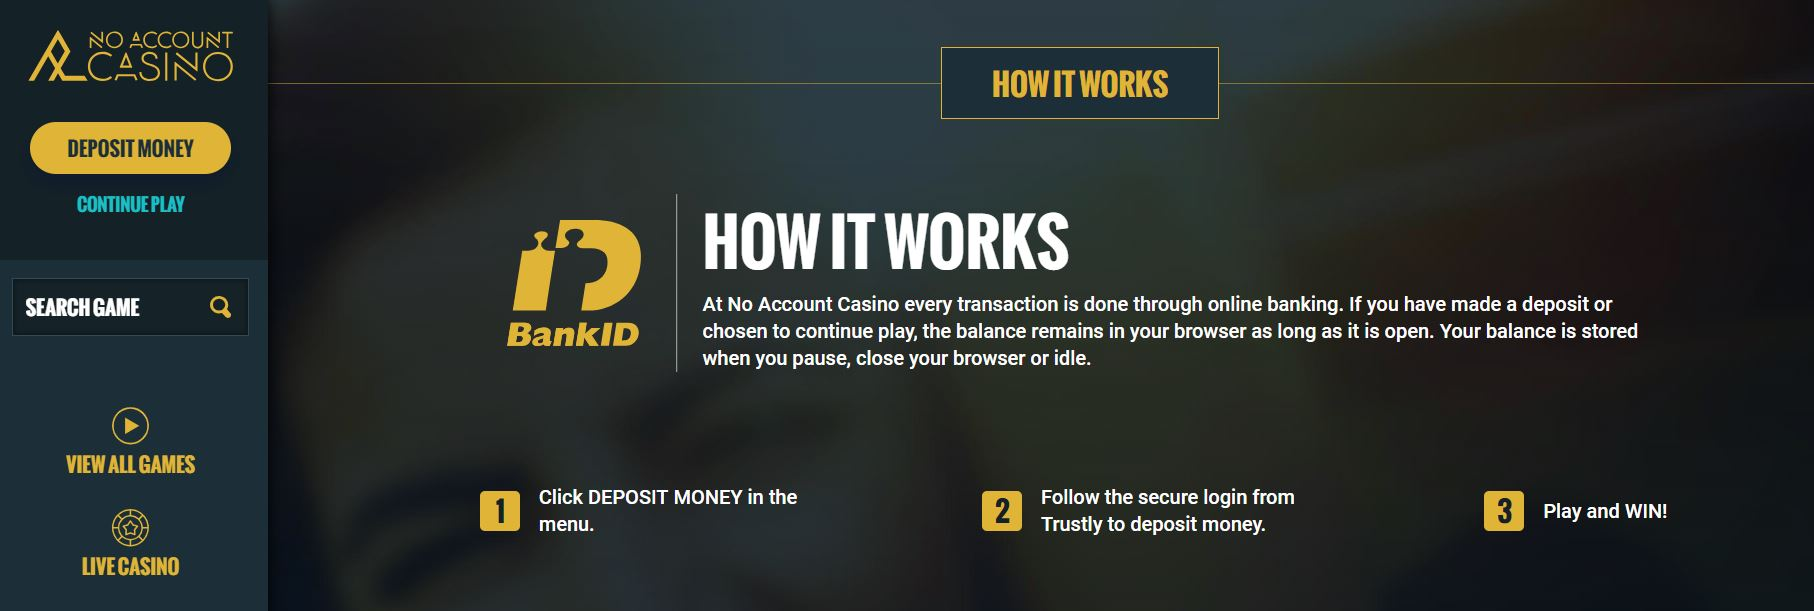 pay and play - no account casino